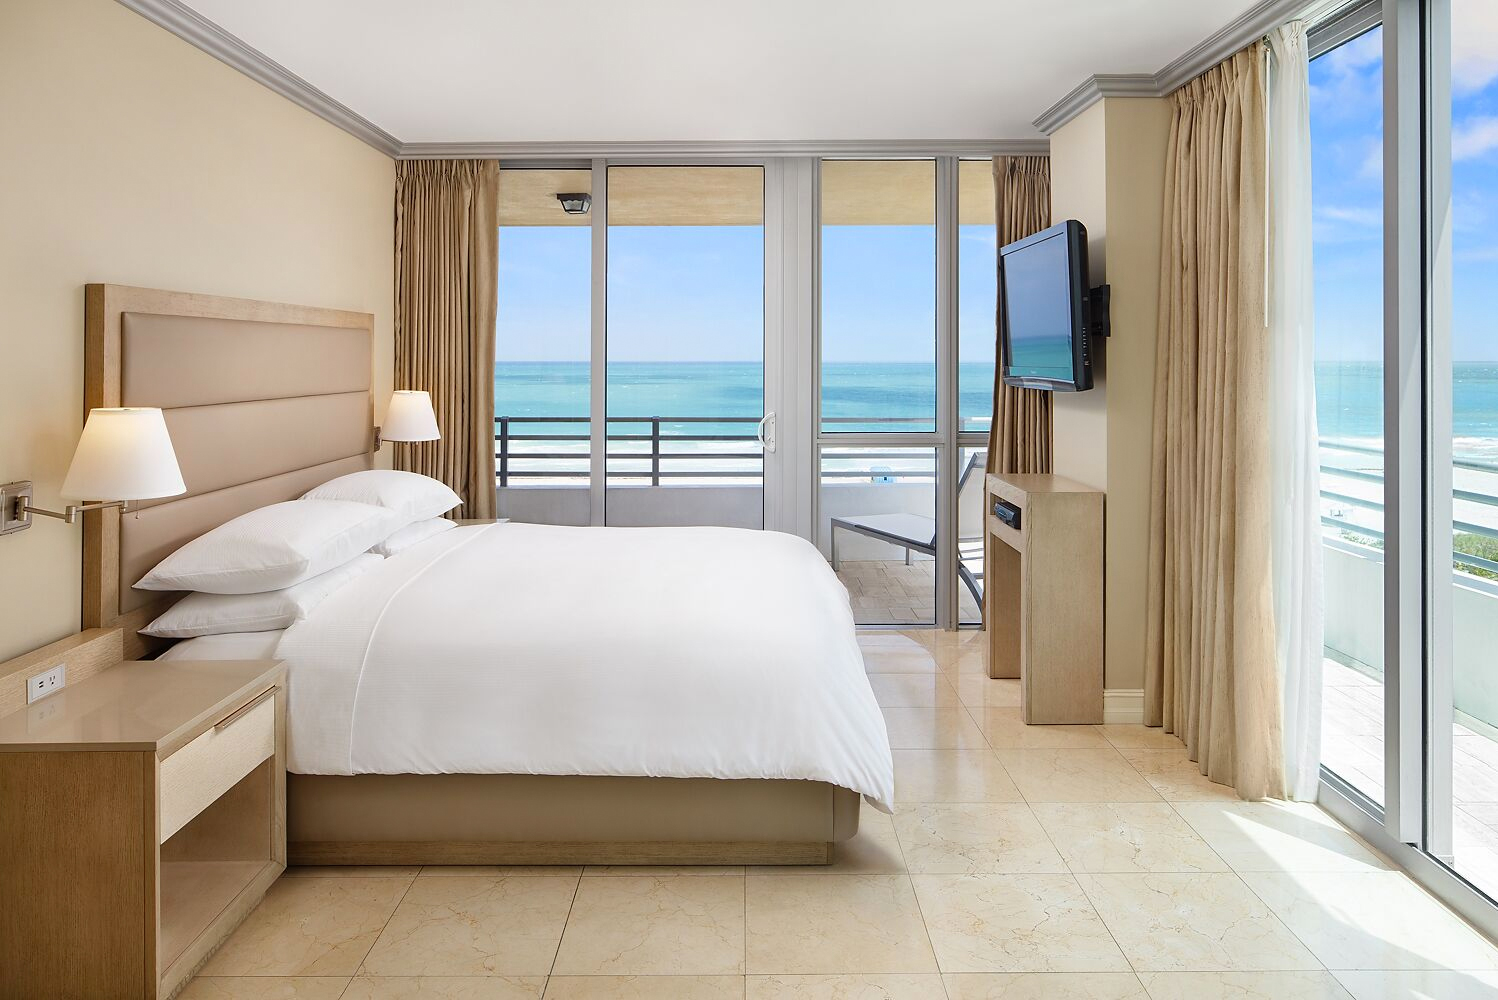 Designed by Bernhardt Designs, the new guestrooms have design that accents the fun spirit of South Beach with new lighting and furnishings.